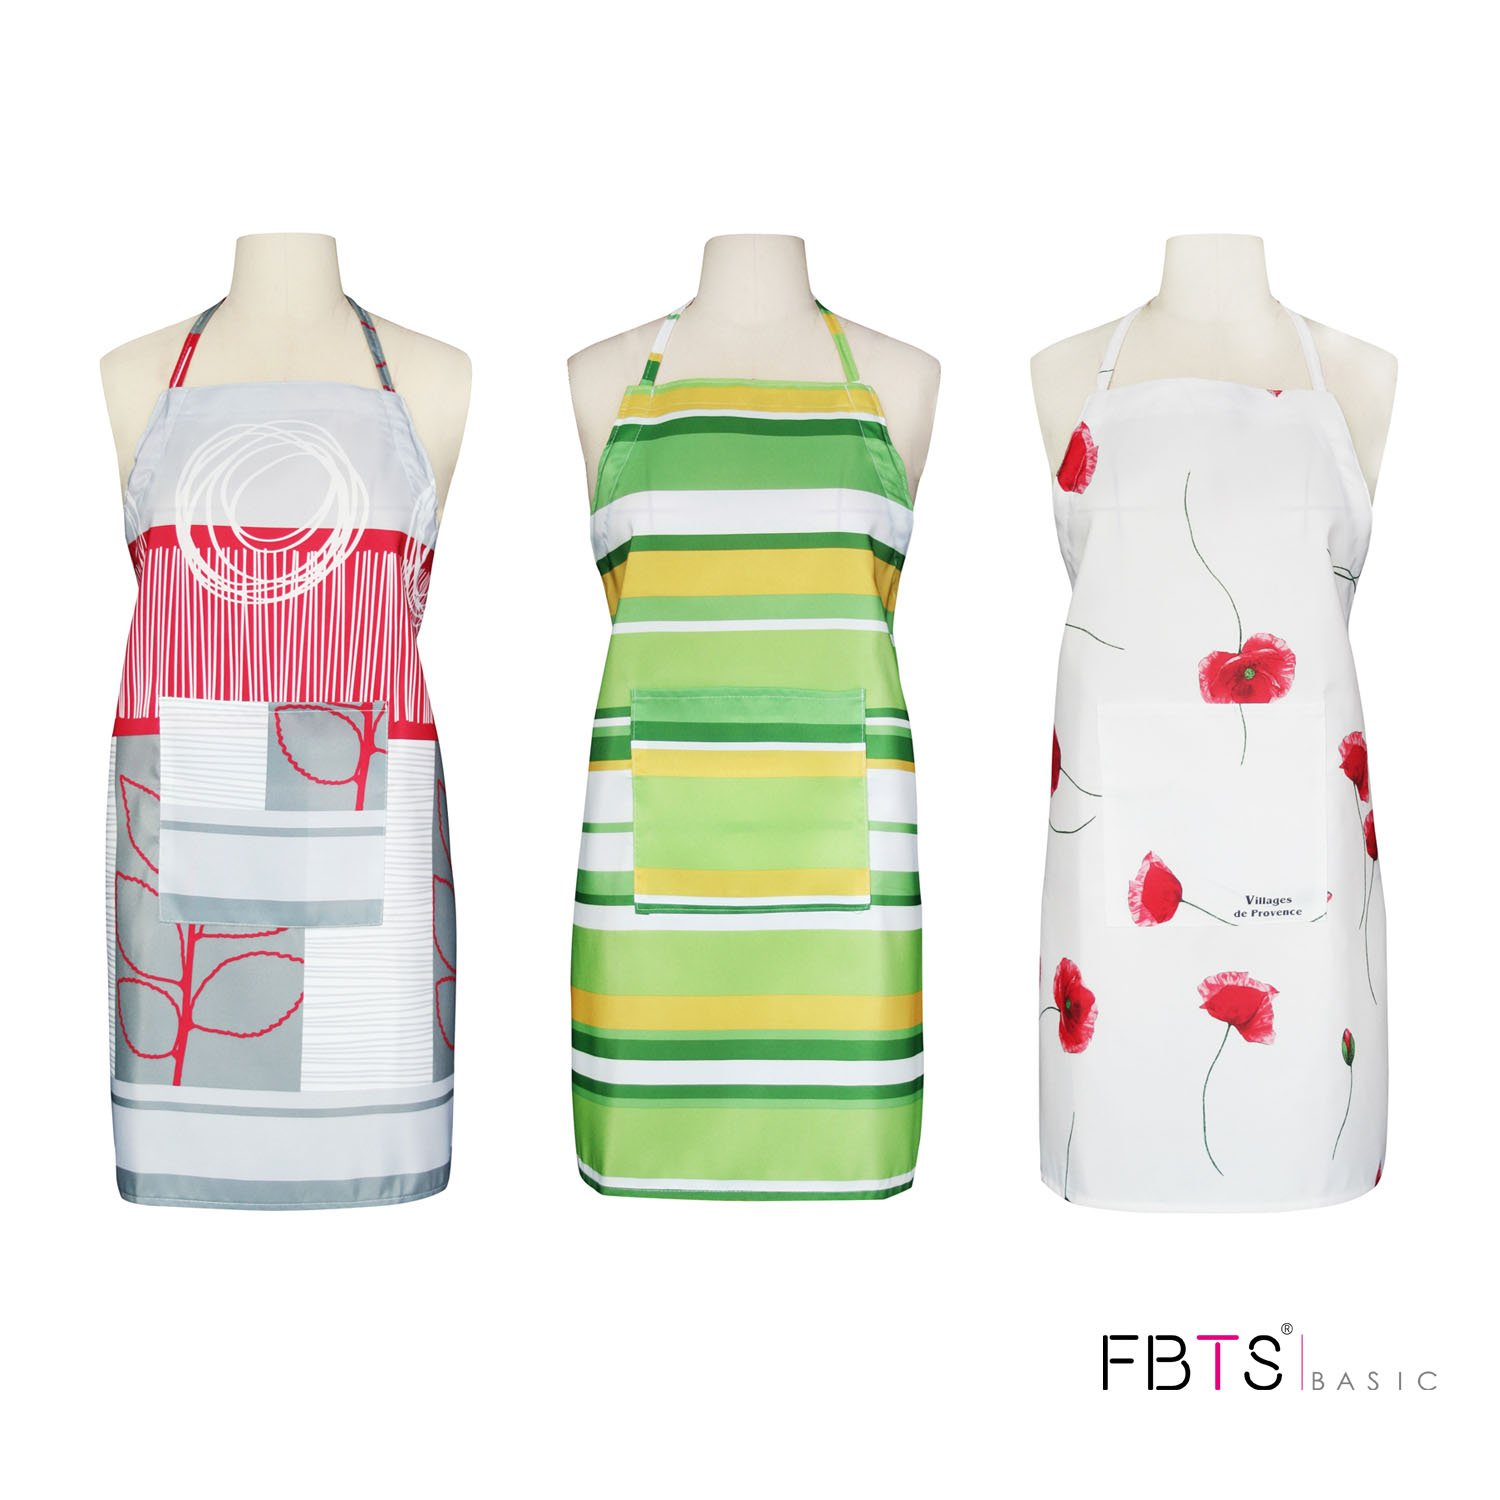 Aprons (Set Of 3) Adjustable Height With Front Pocket Water Resistant For Women And Men Durable by FBTS Basic by FBTS Basic